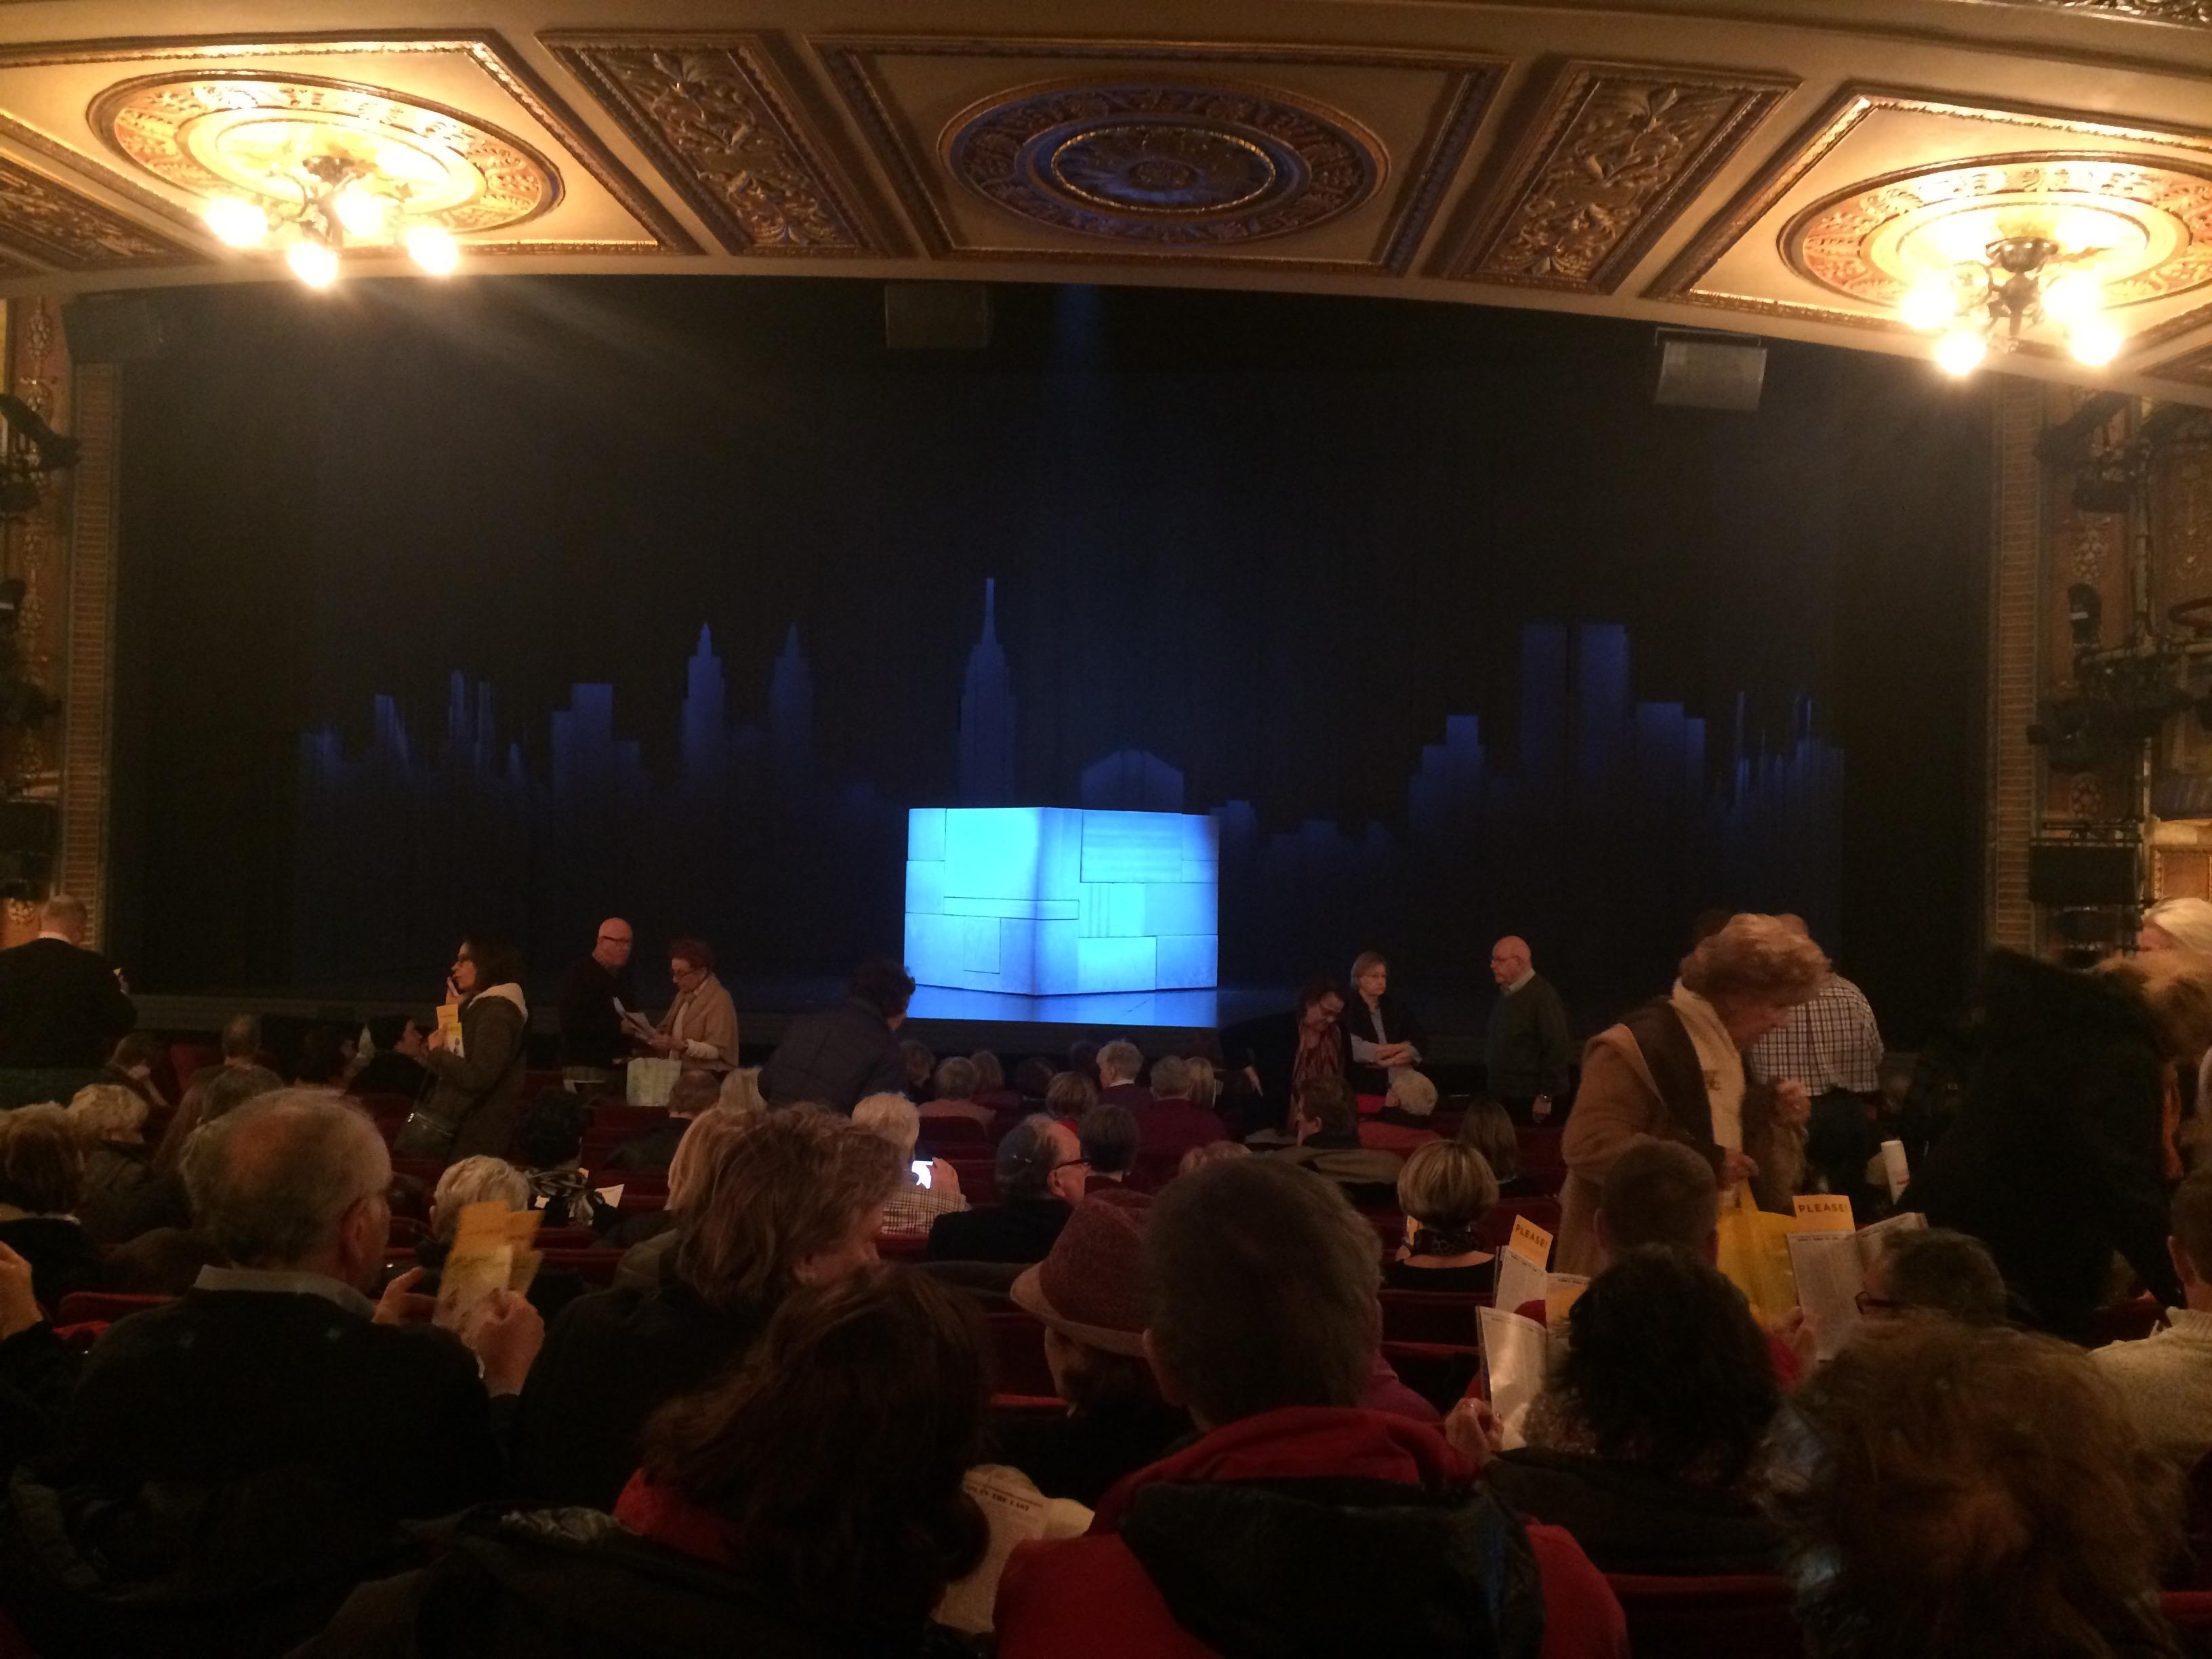 Walter Kerr Theatre Section Orch Center Row R Seat 101